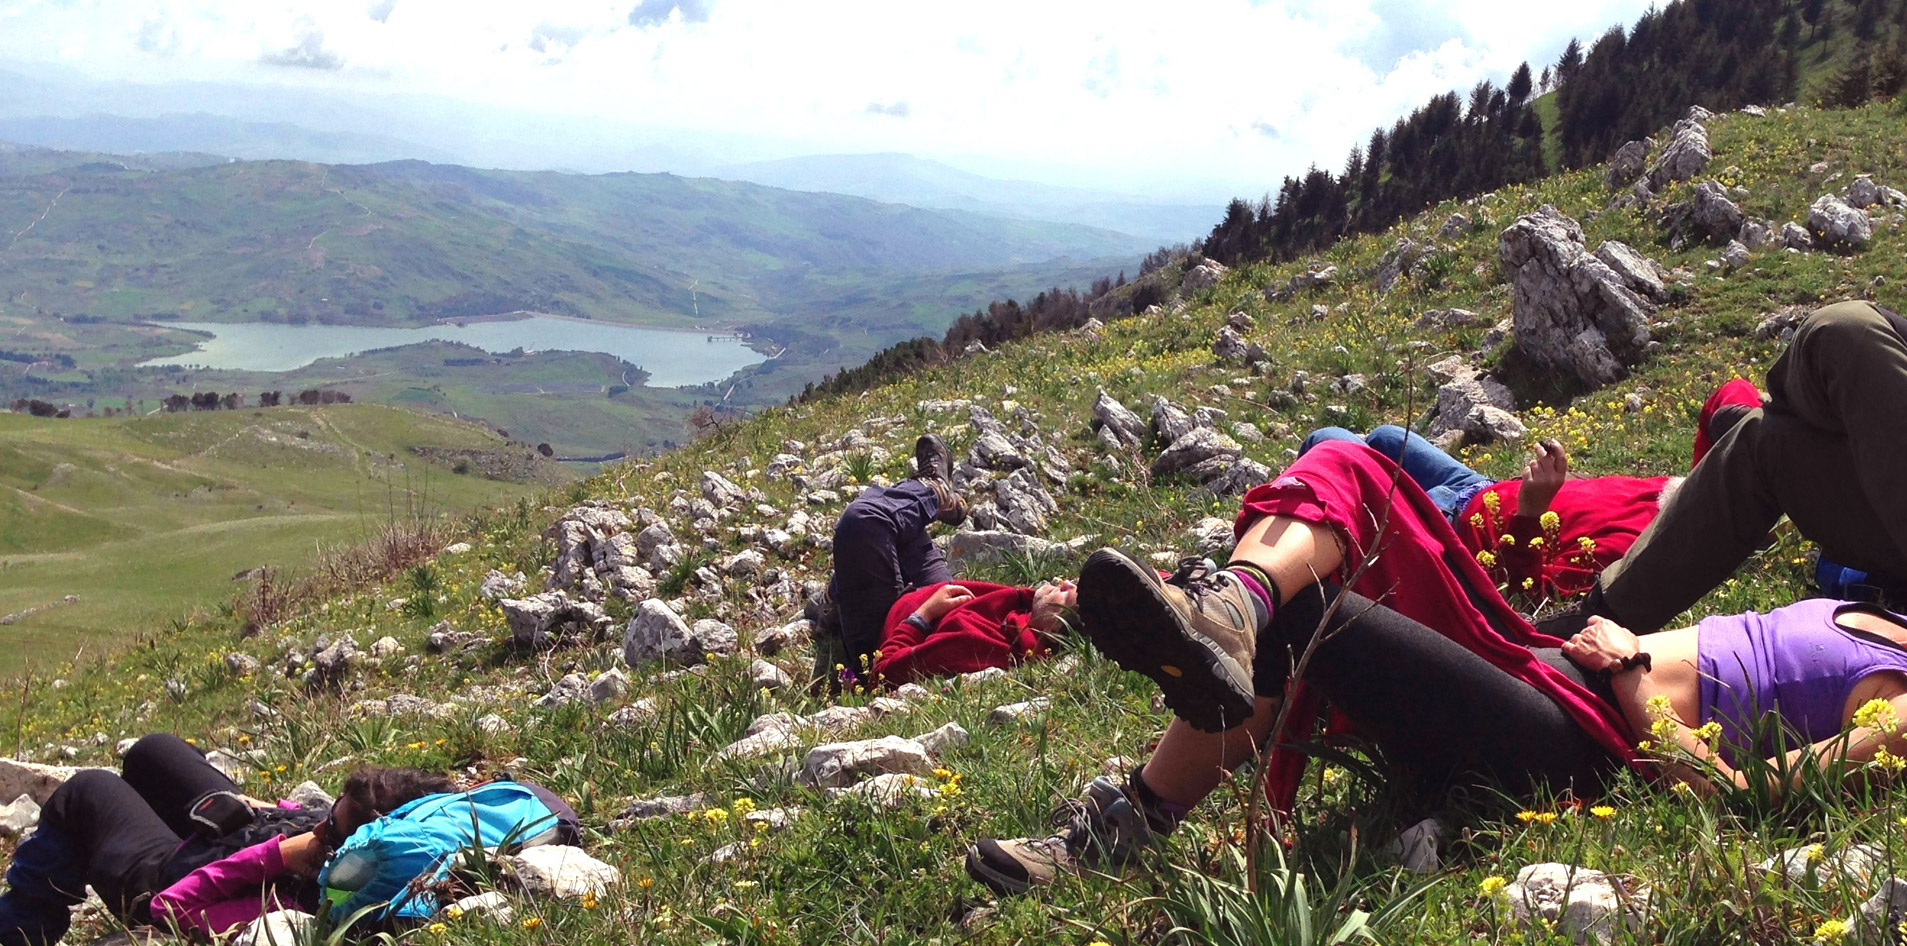 Trekking in the sicanian mountains